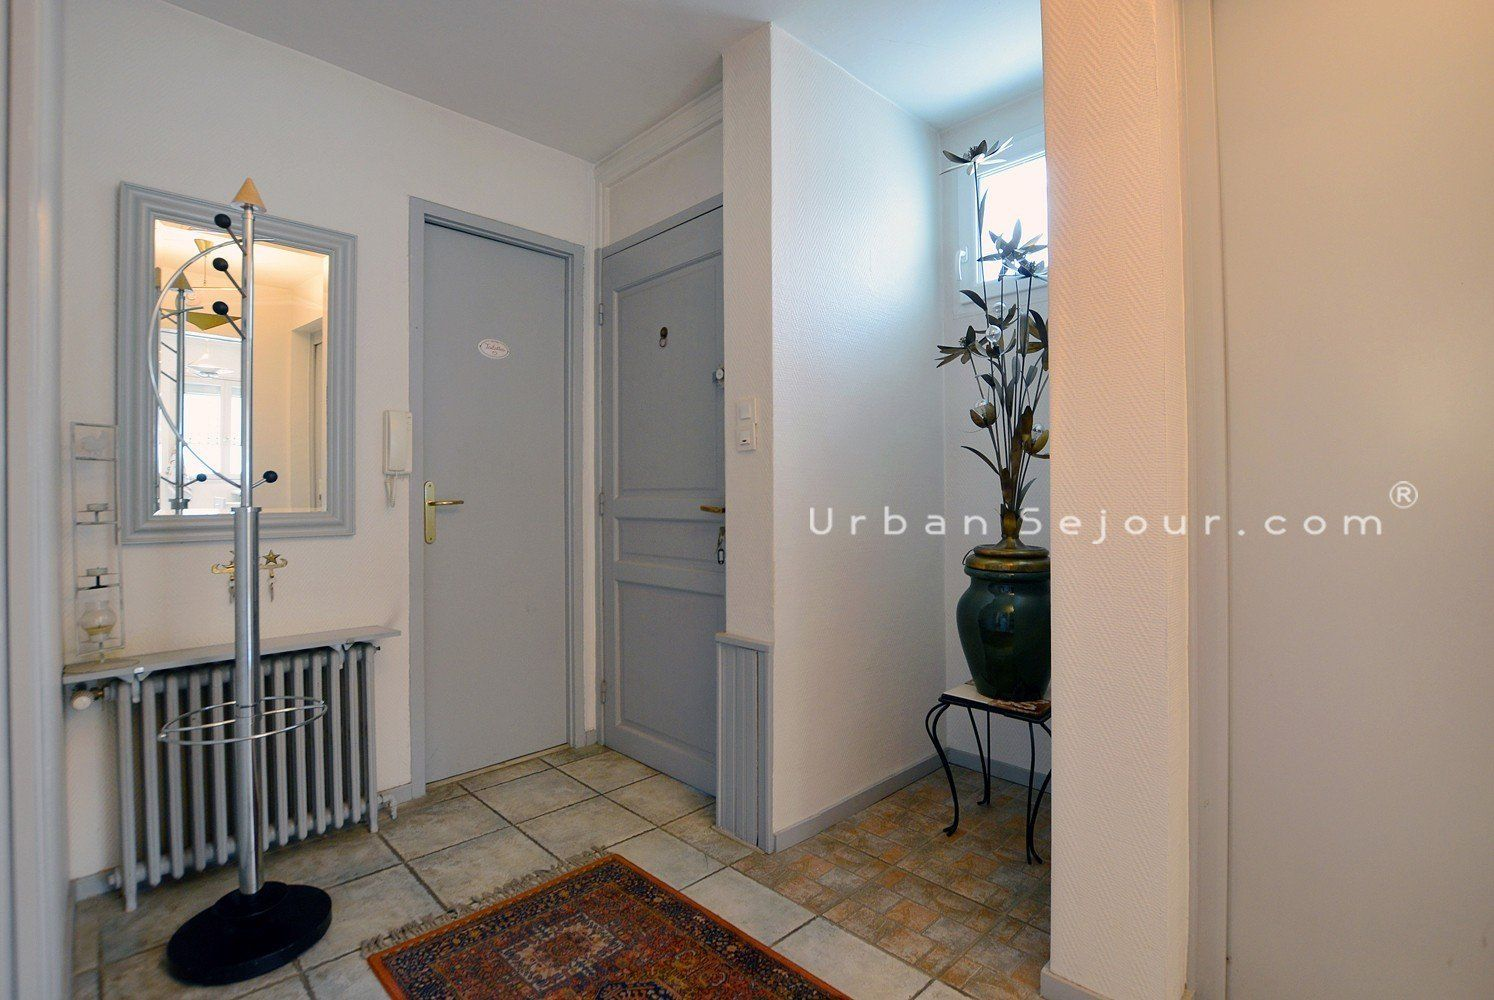 Location appartement avec 3 chambres location - Location appartement bron ...